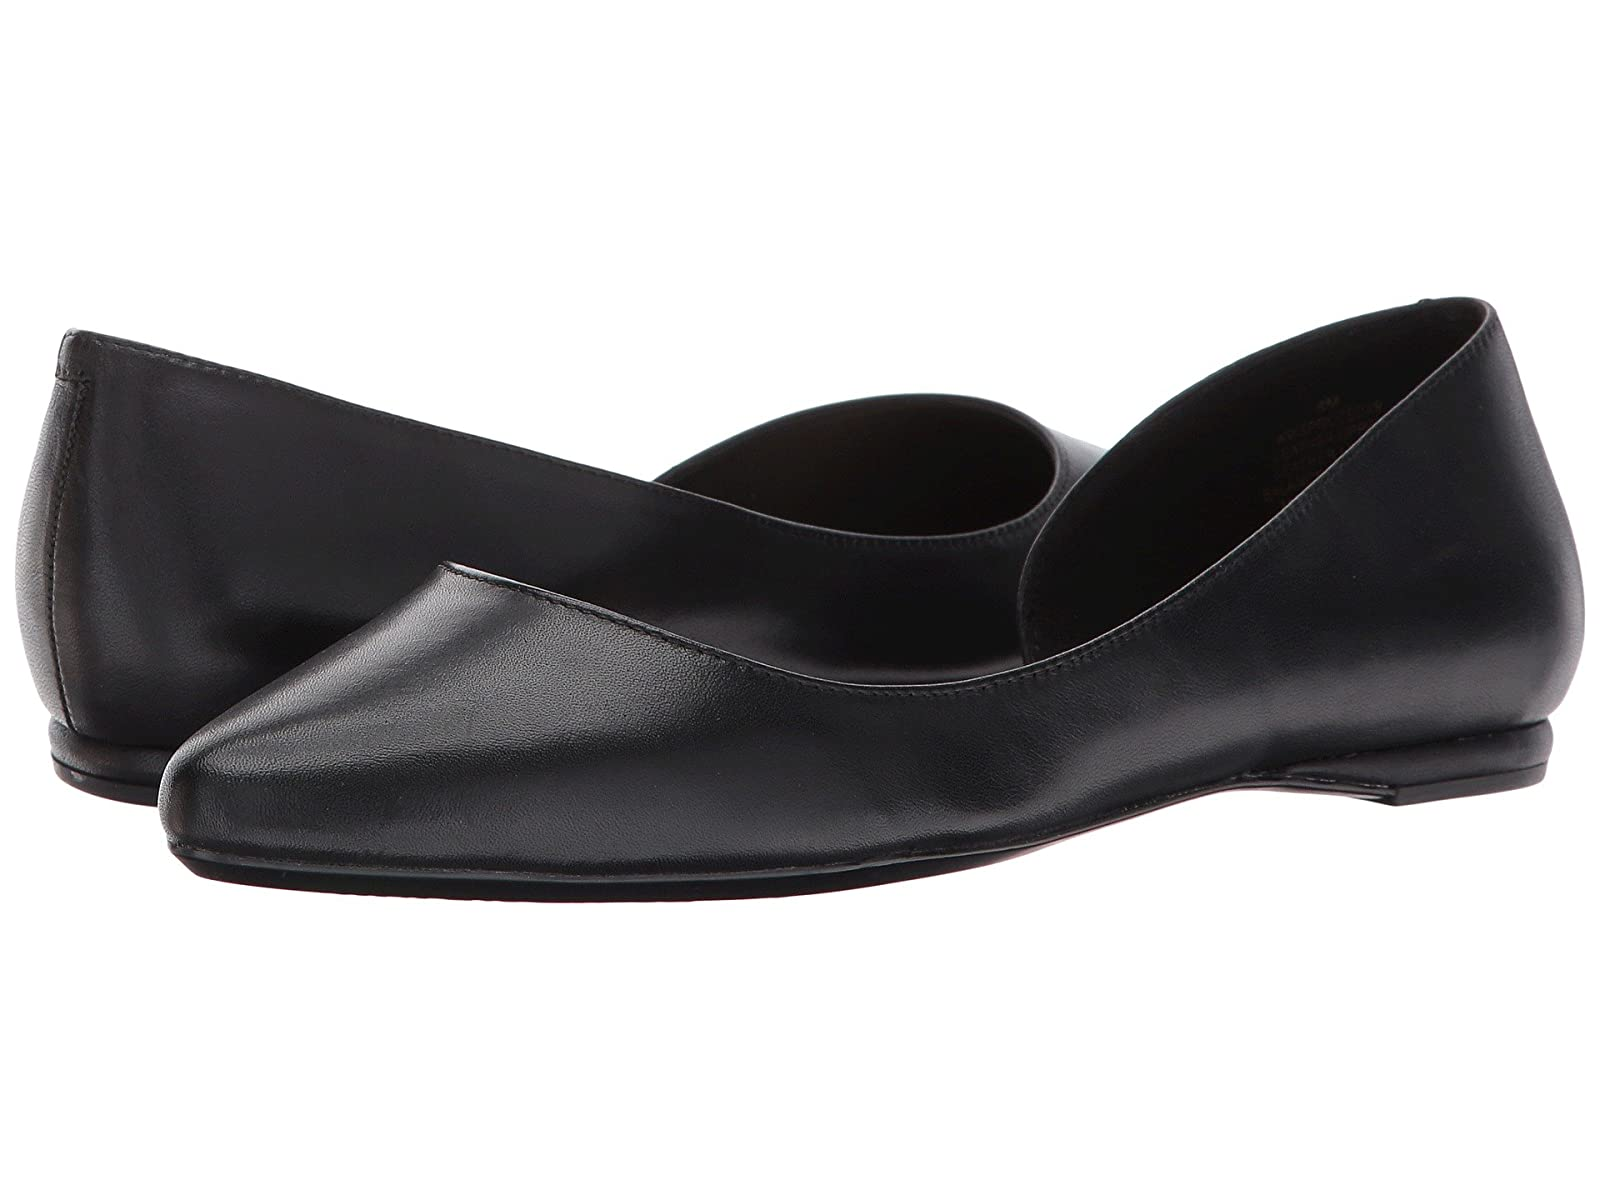 Man's/Woman's:Nine West Products Spruce9x9 Flat: Selling New Products West b163e9